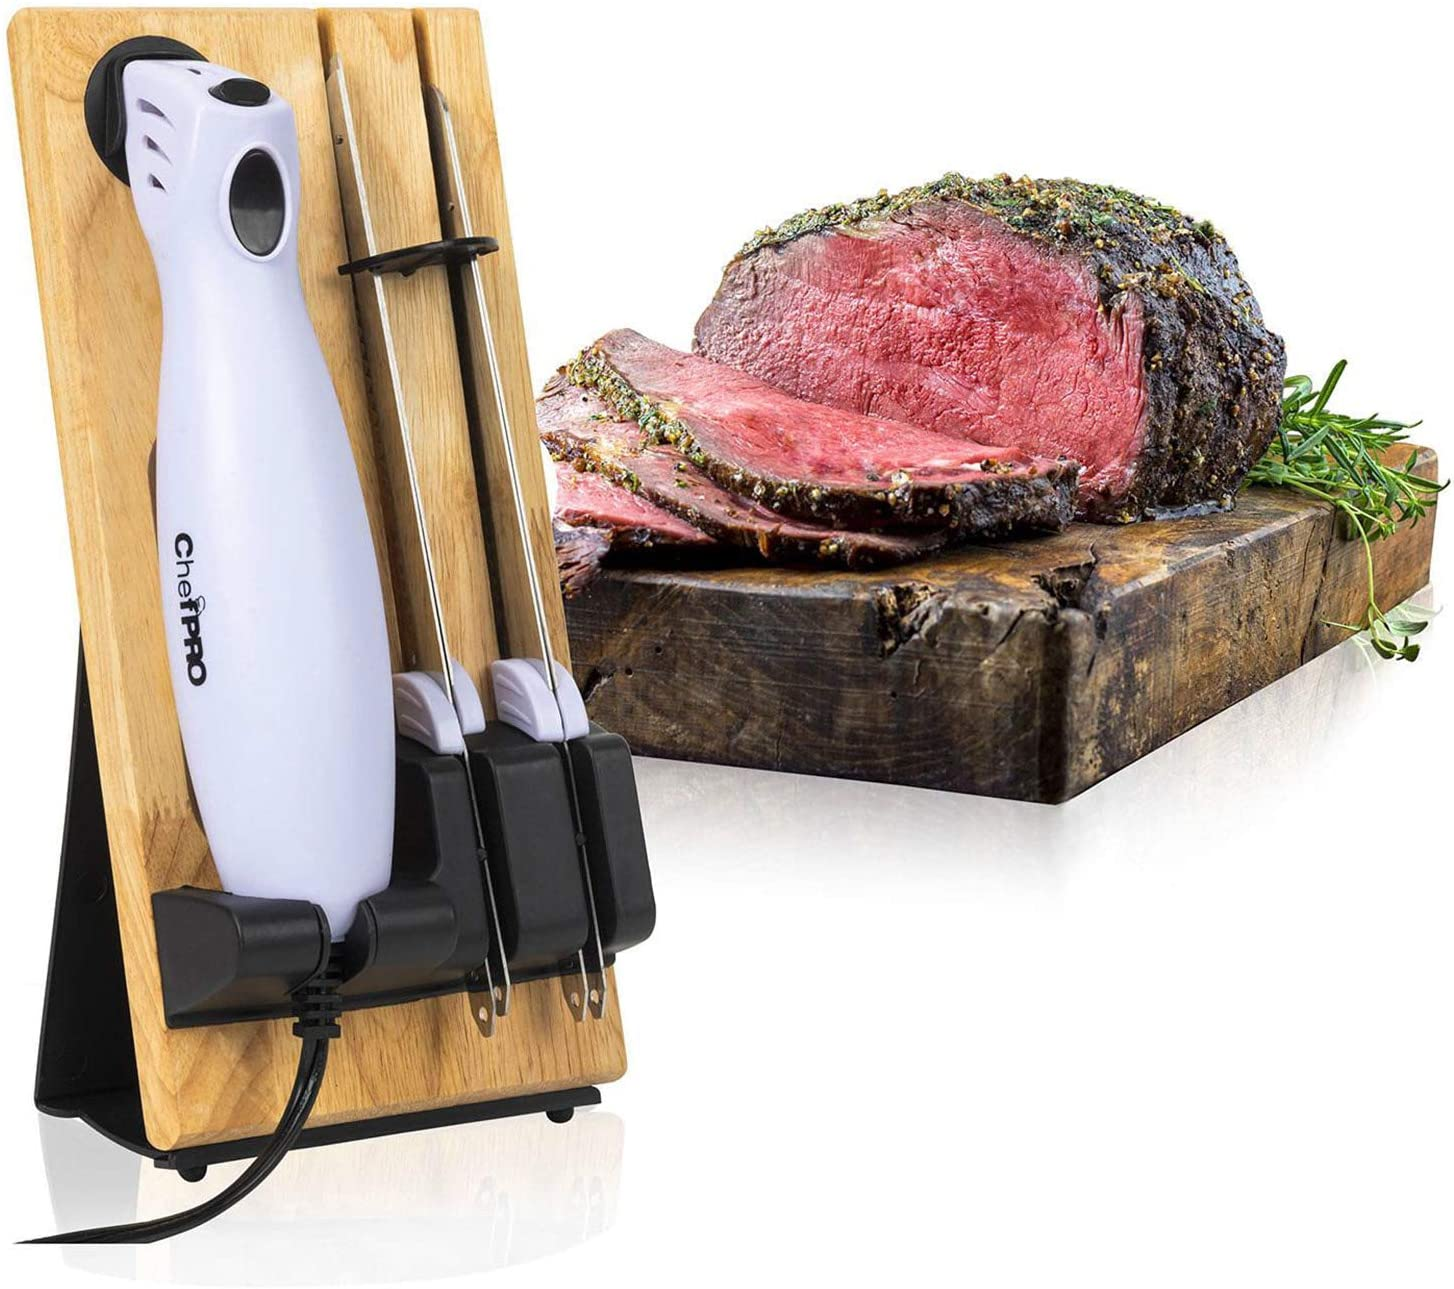 SERRATED CARVING ELECTRIC KNIFE SET By Chef PRO, With Wooden Storage Block, 2 Interchangeable Stainless-Steel Blades, Precise Cutting And Carving of Meats, Fruits and Breads, Ergonomic Design For Comfort, White